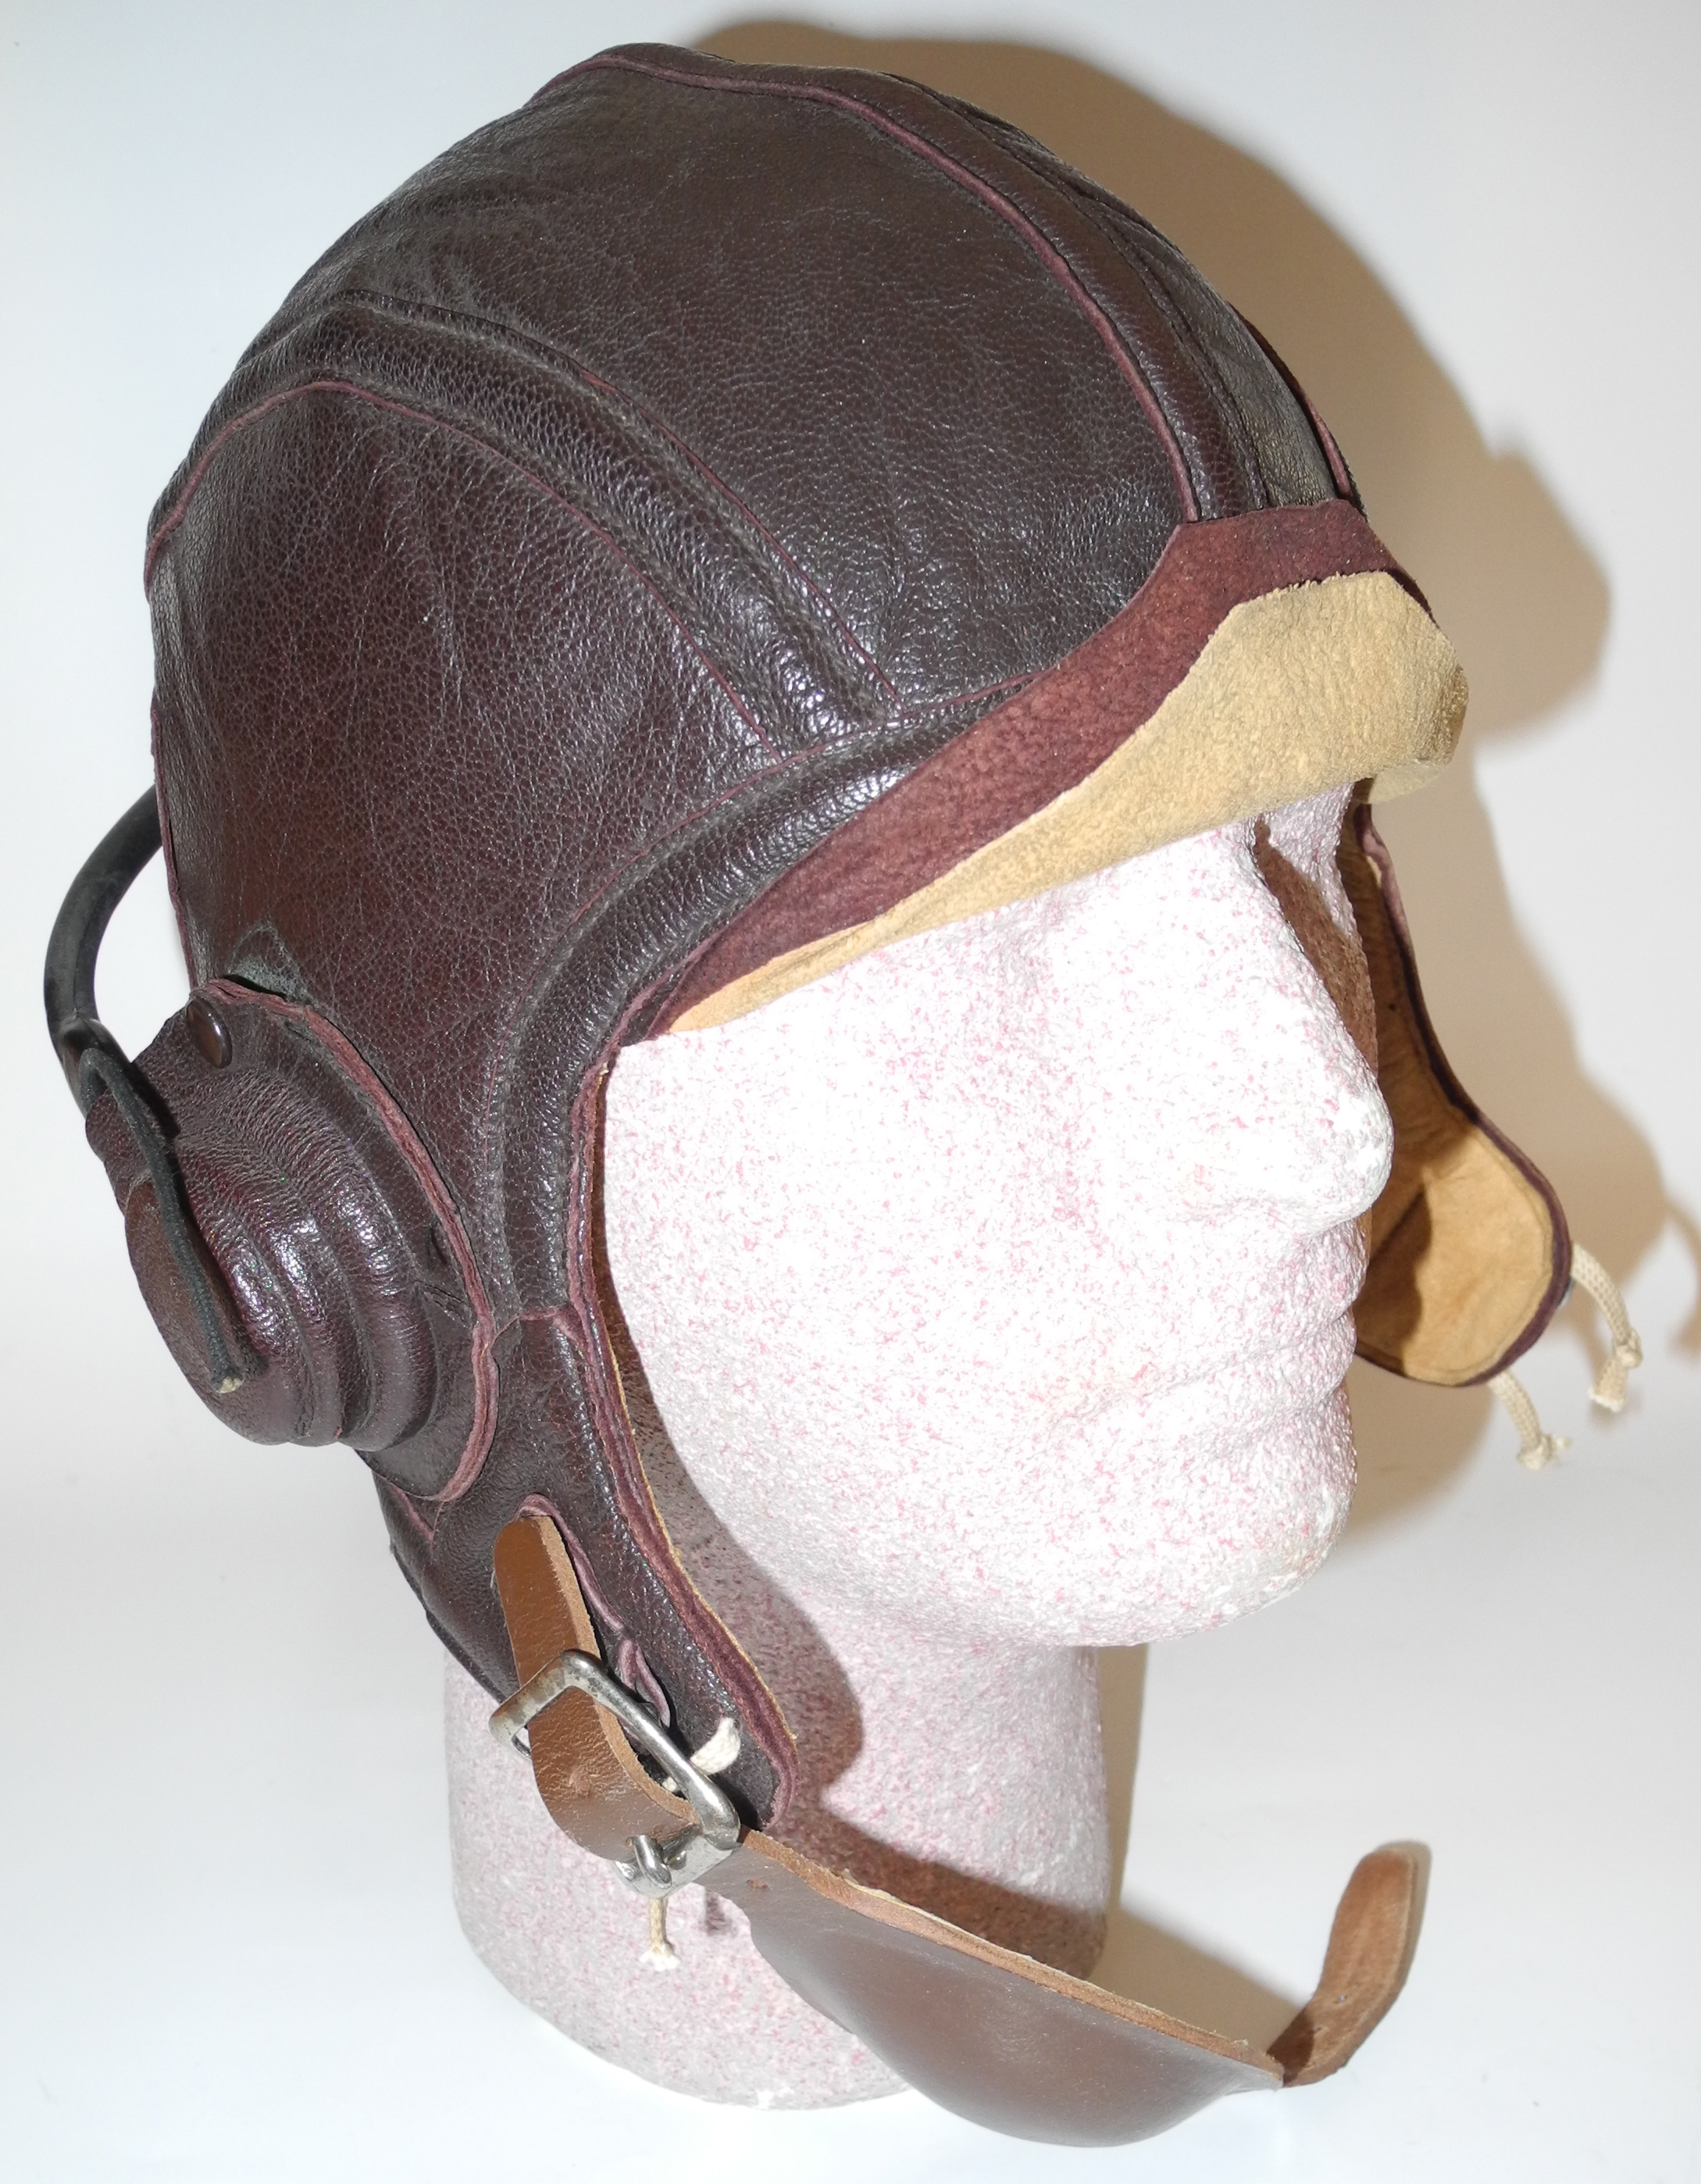 USN NAF 1092 helmet +TH-37 receivers